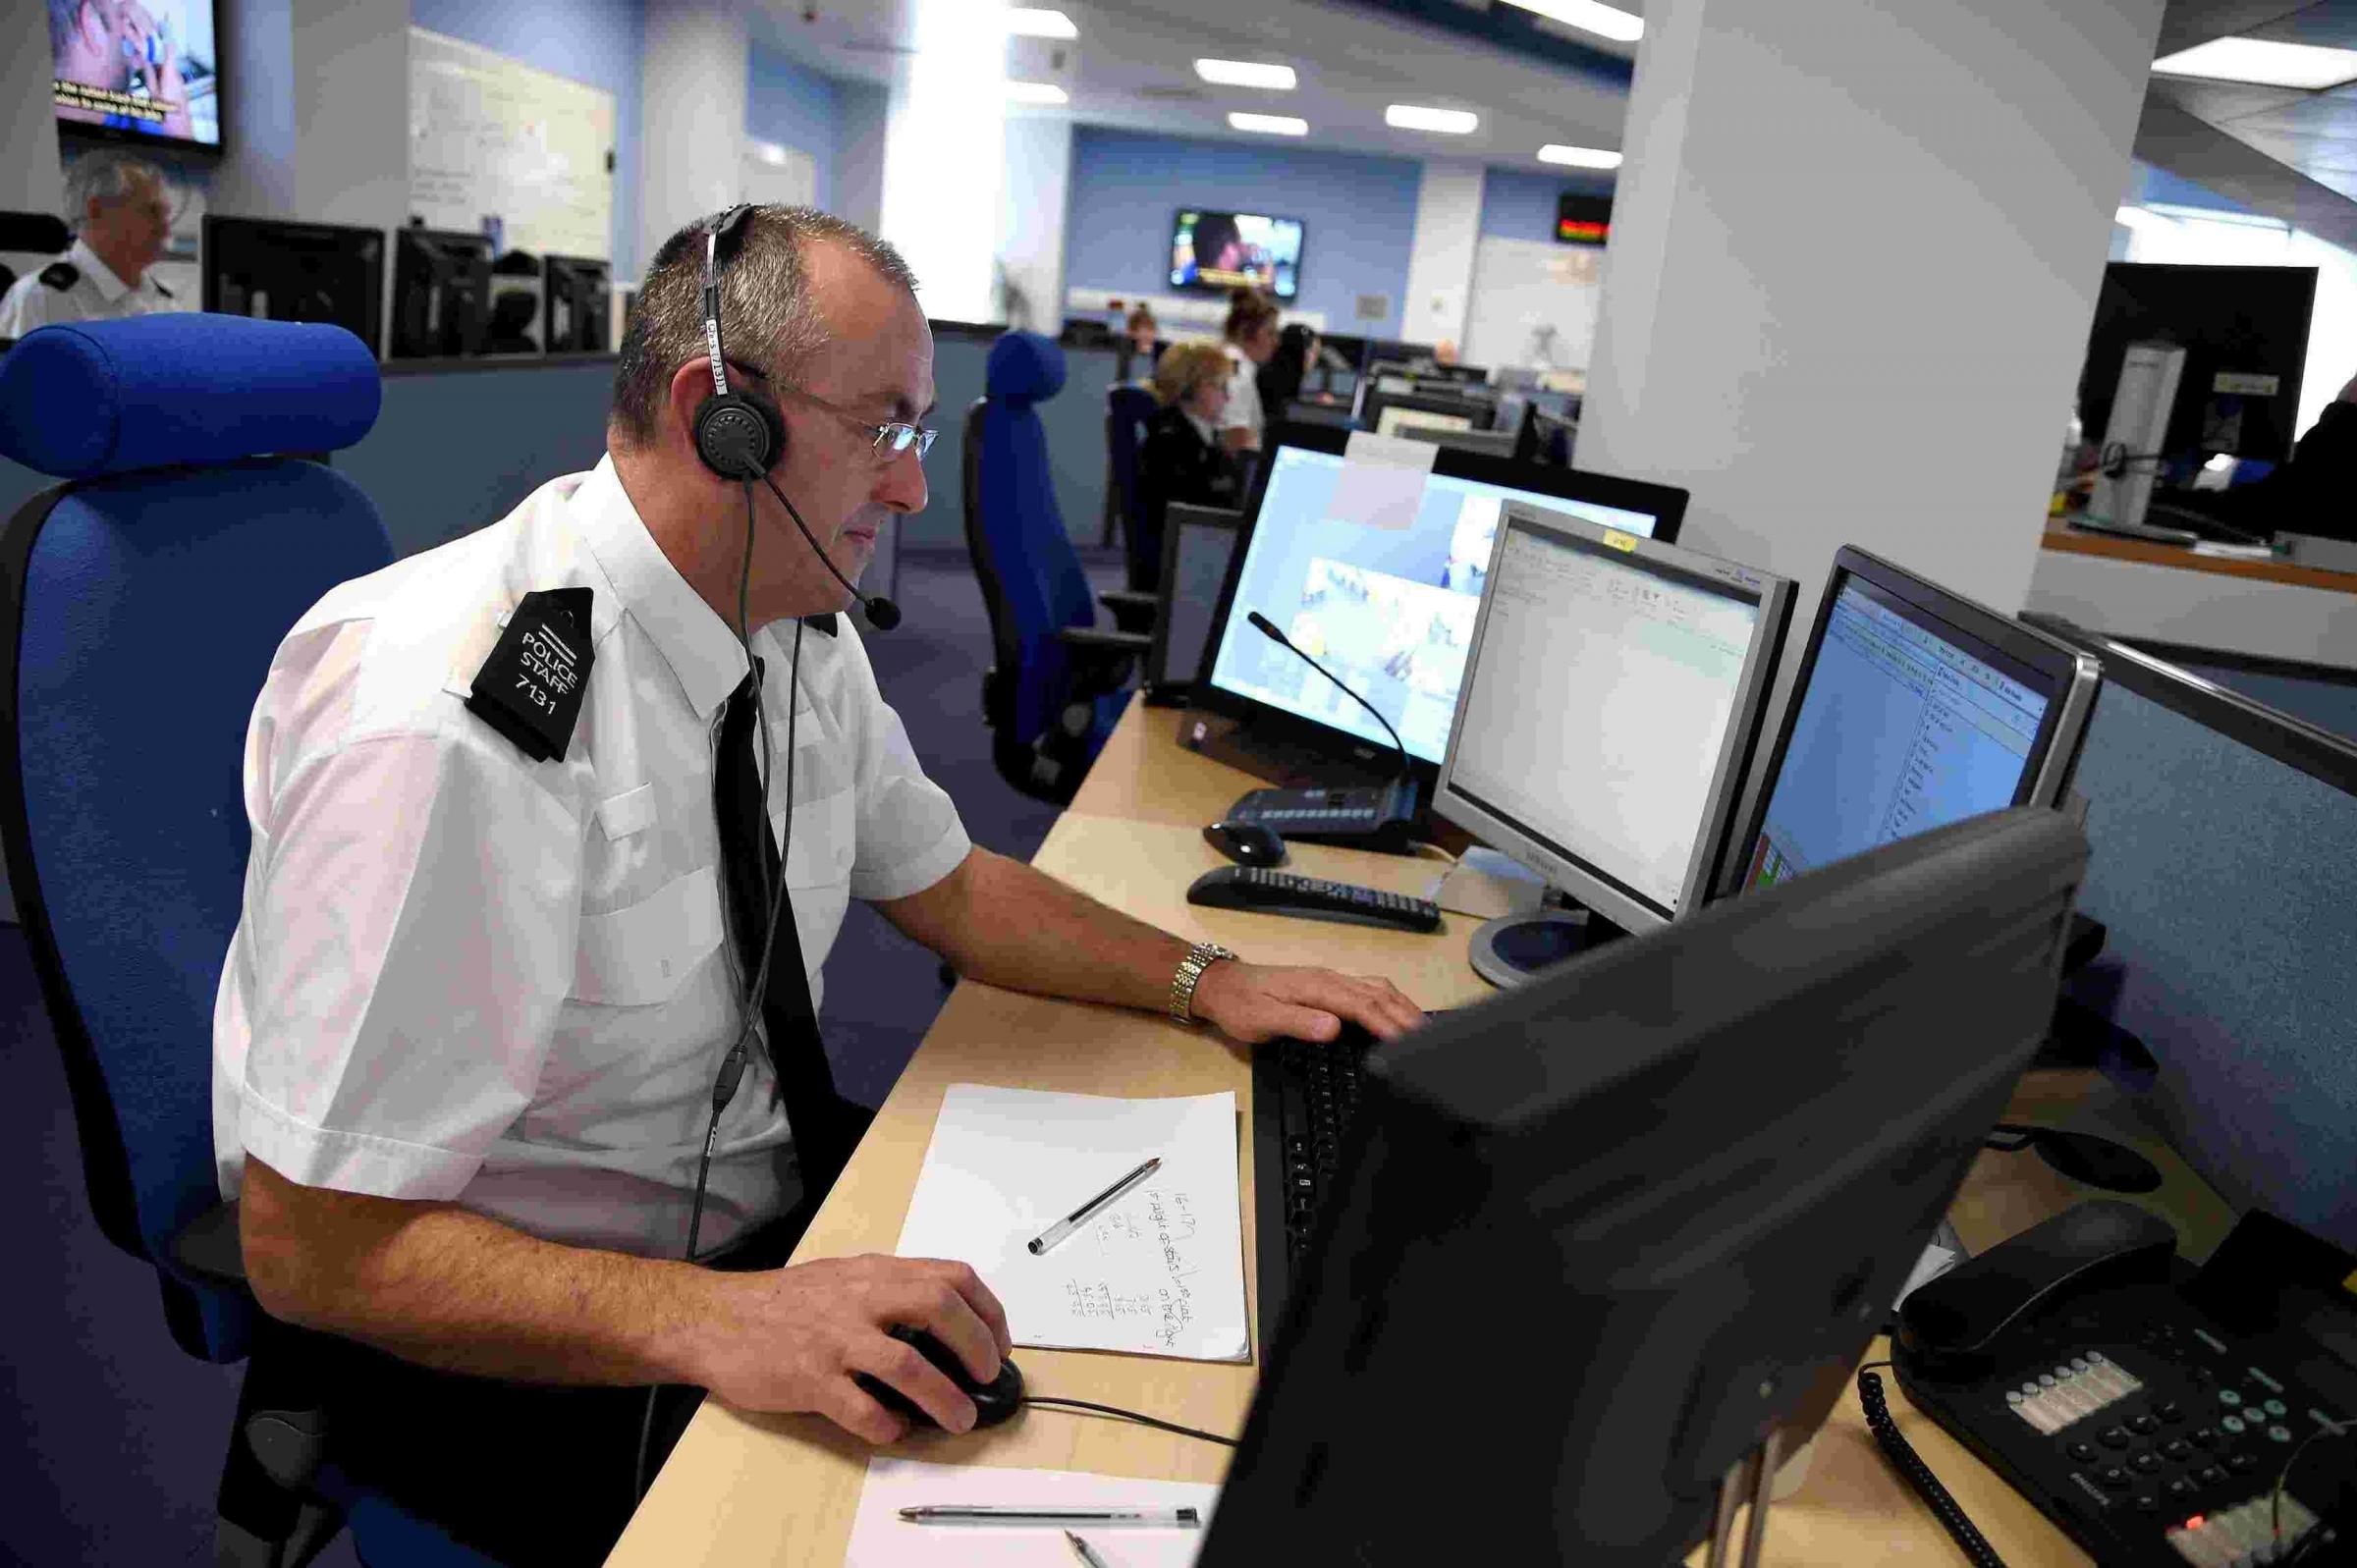 Almost 900,000 non-emergency calls to police have gone unanswered in the last five years